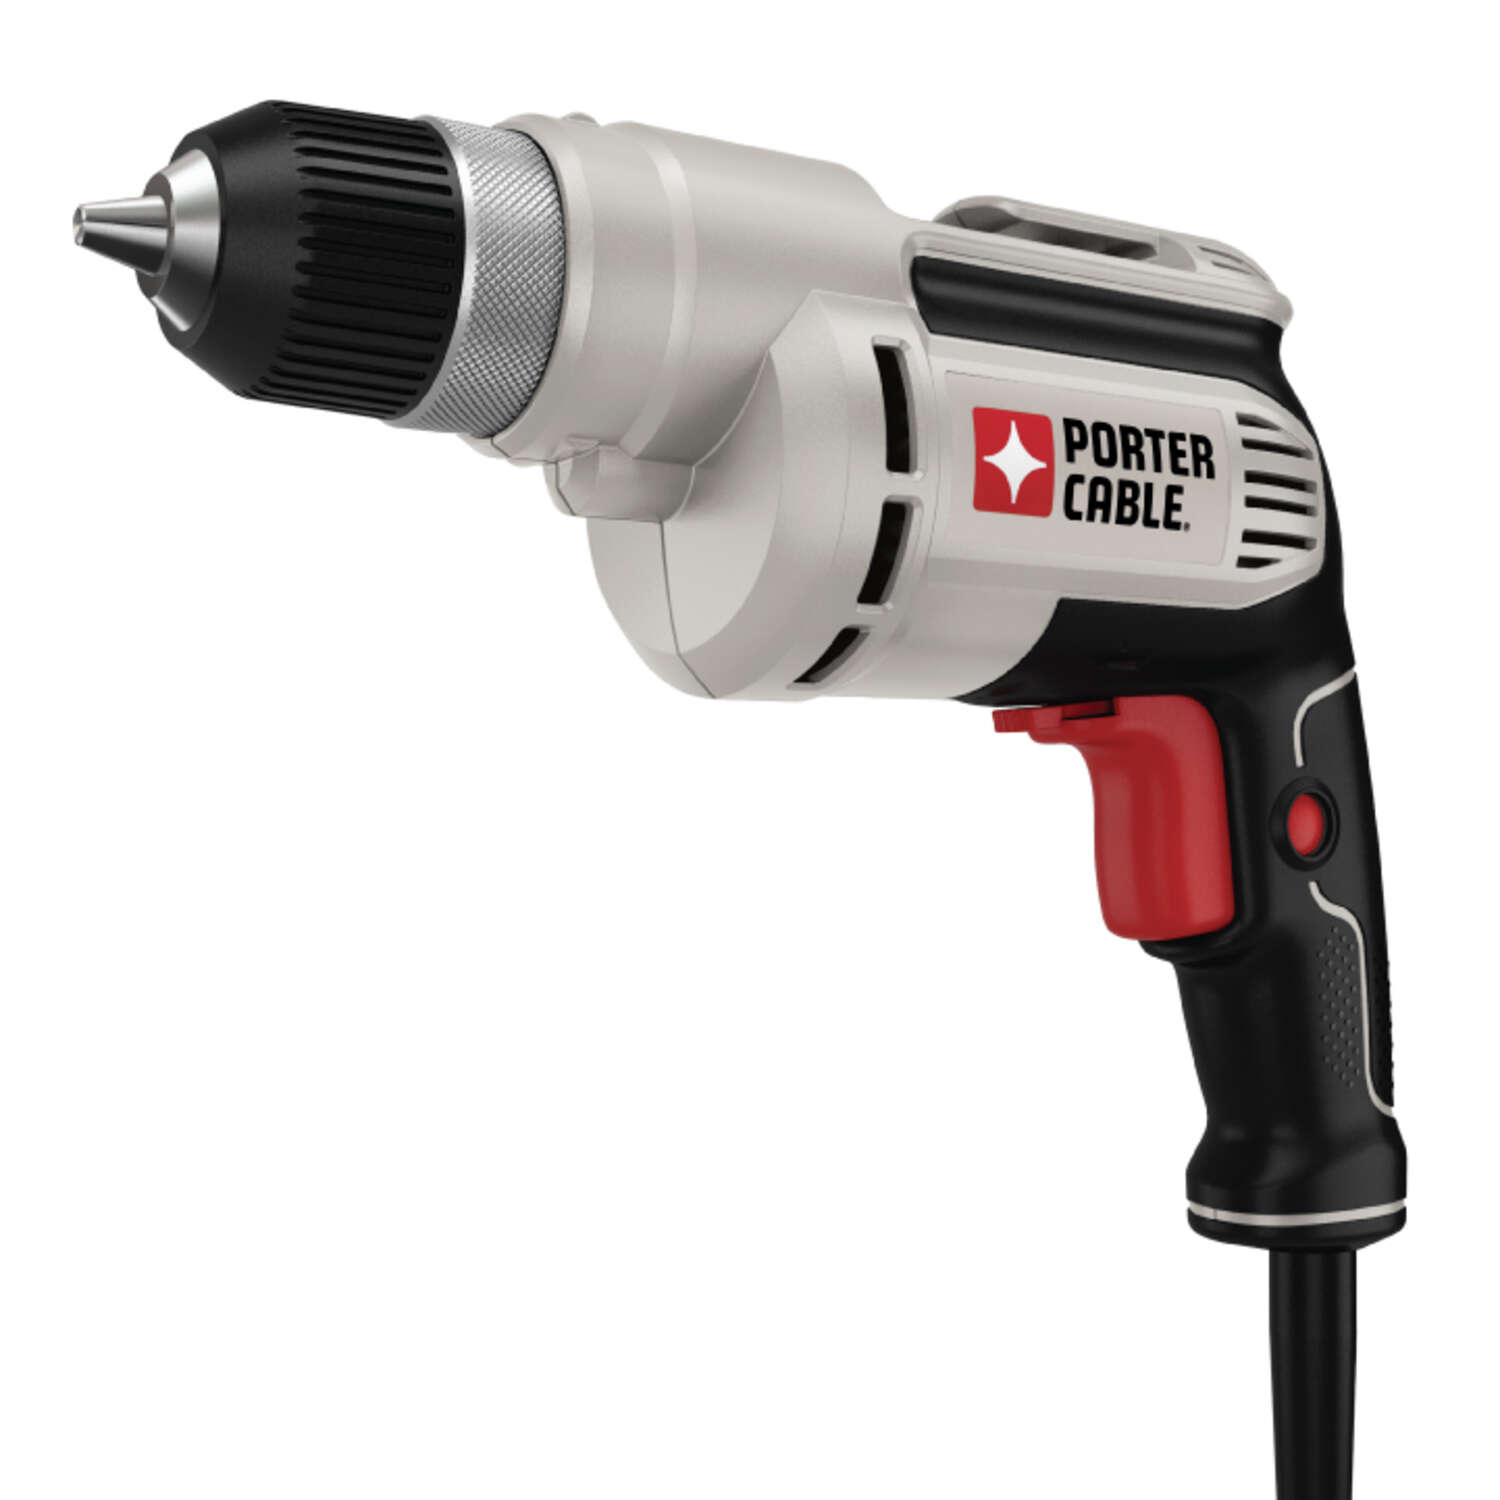 Porter Cable  3/8 in. Keyless  VSR Corded Drill  Bare Tool  6.5 amps 2500 rpm